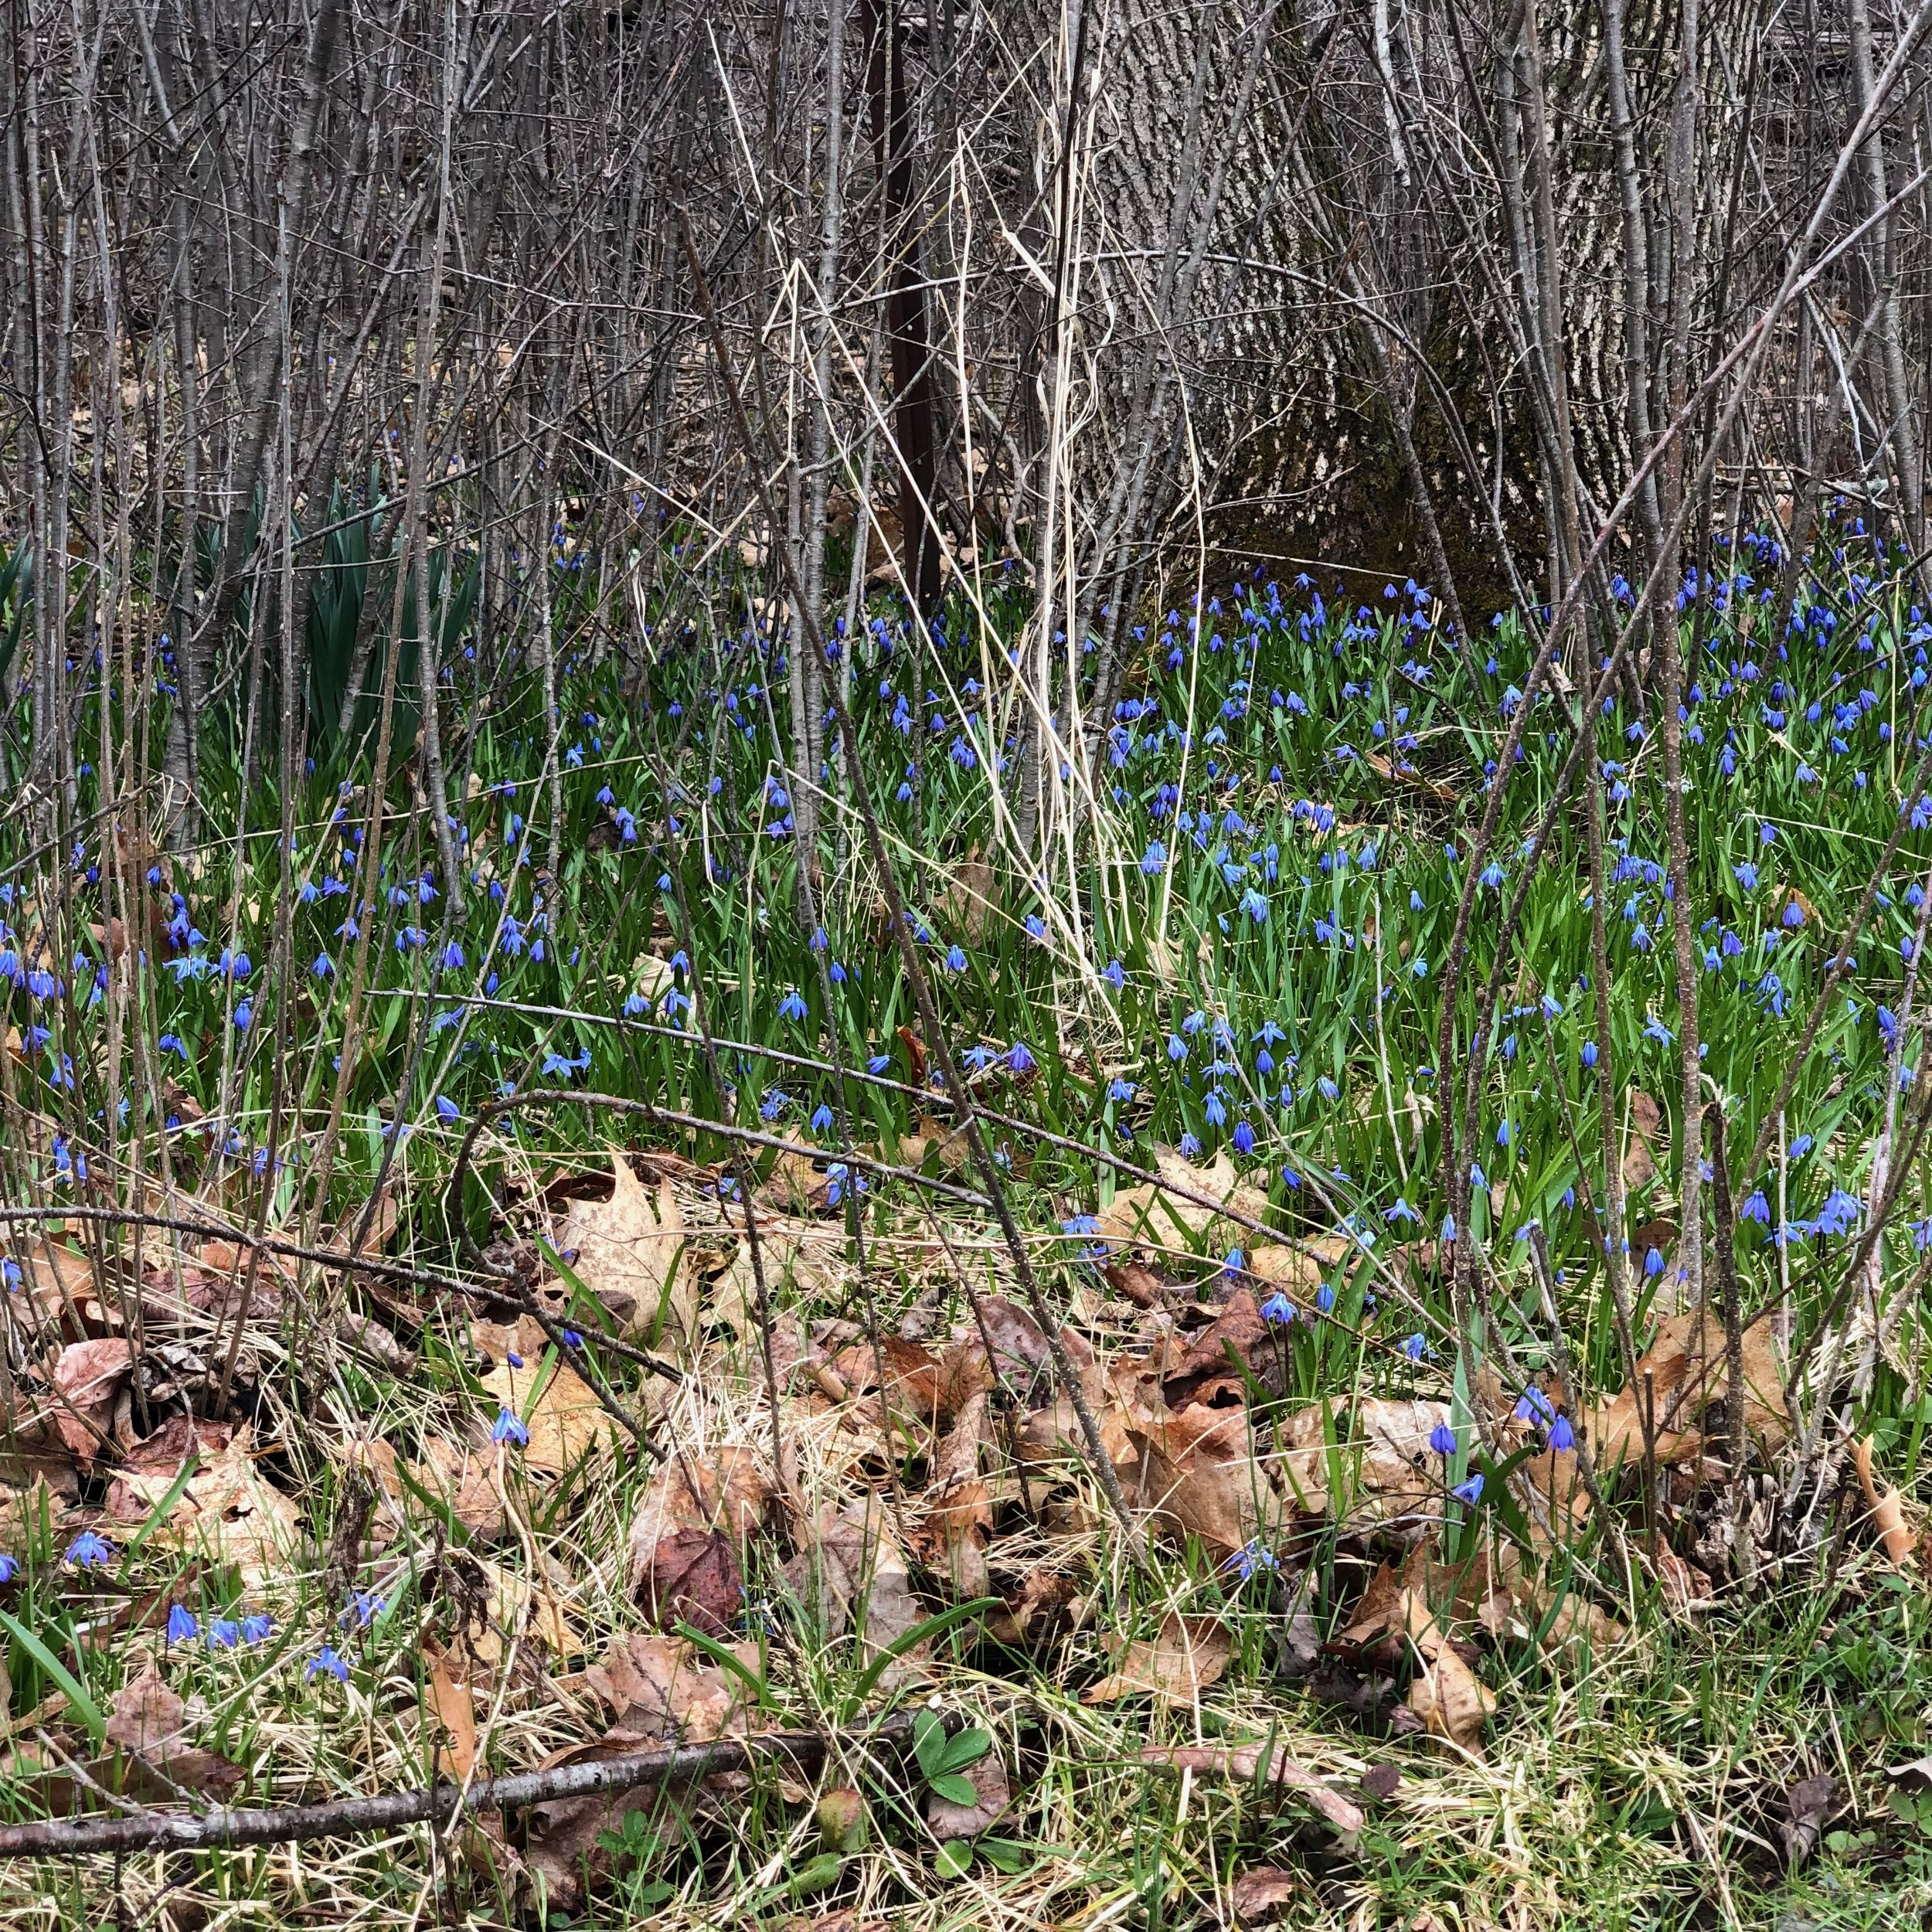 Scilla - a handful planted out 25 years ago - now they are everywhere in the wooded area.